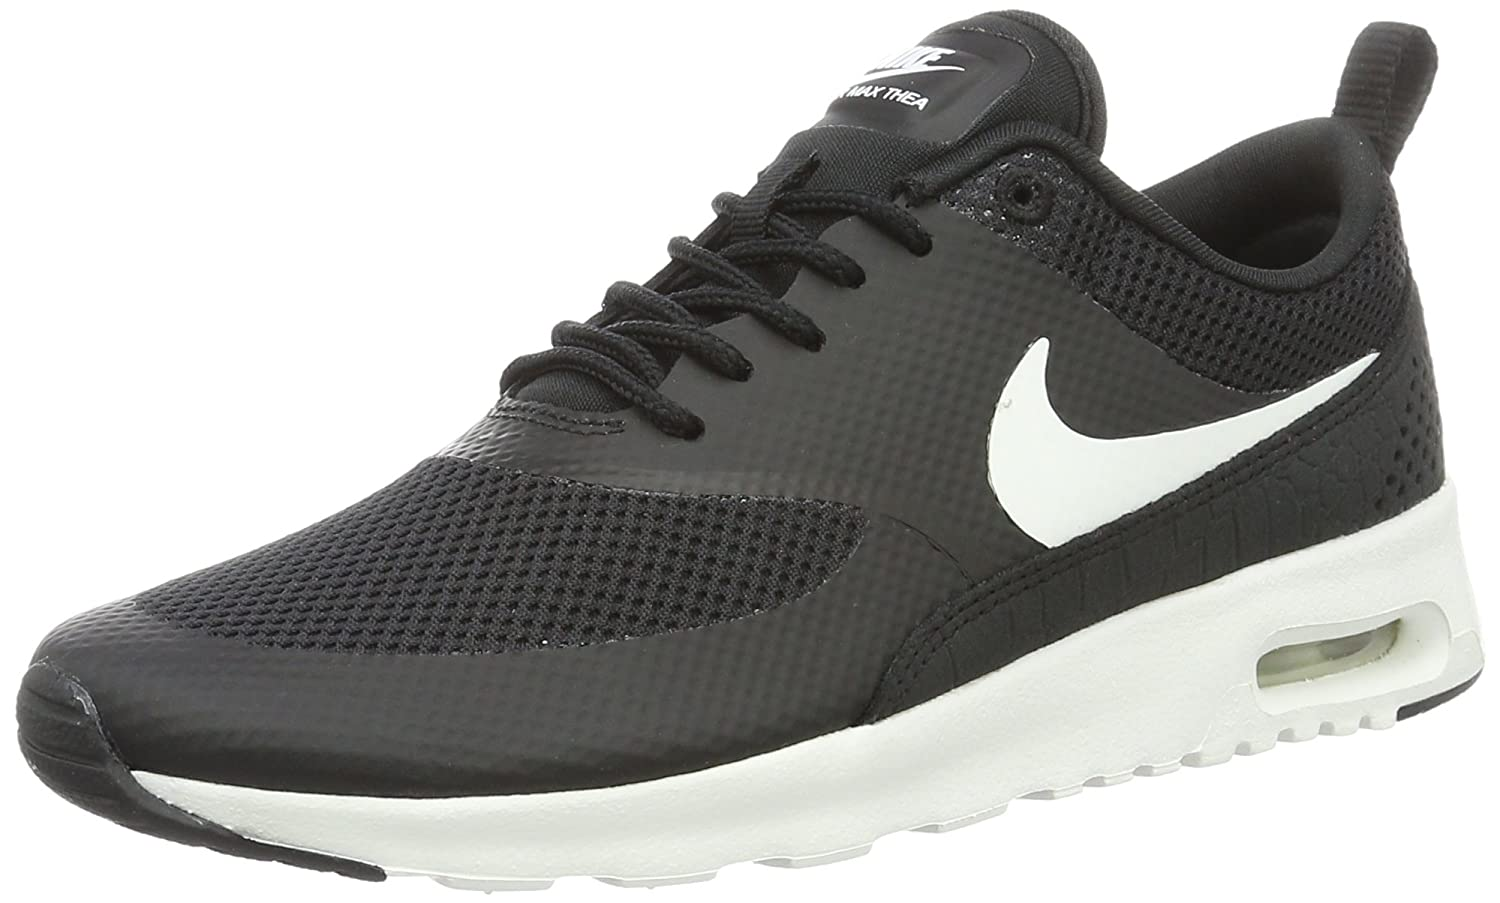 3ae086efef9 Nike Women s Air Max Thea Low-Top Sneakers